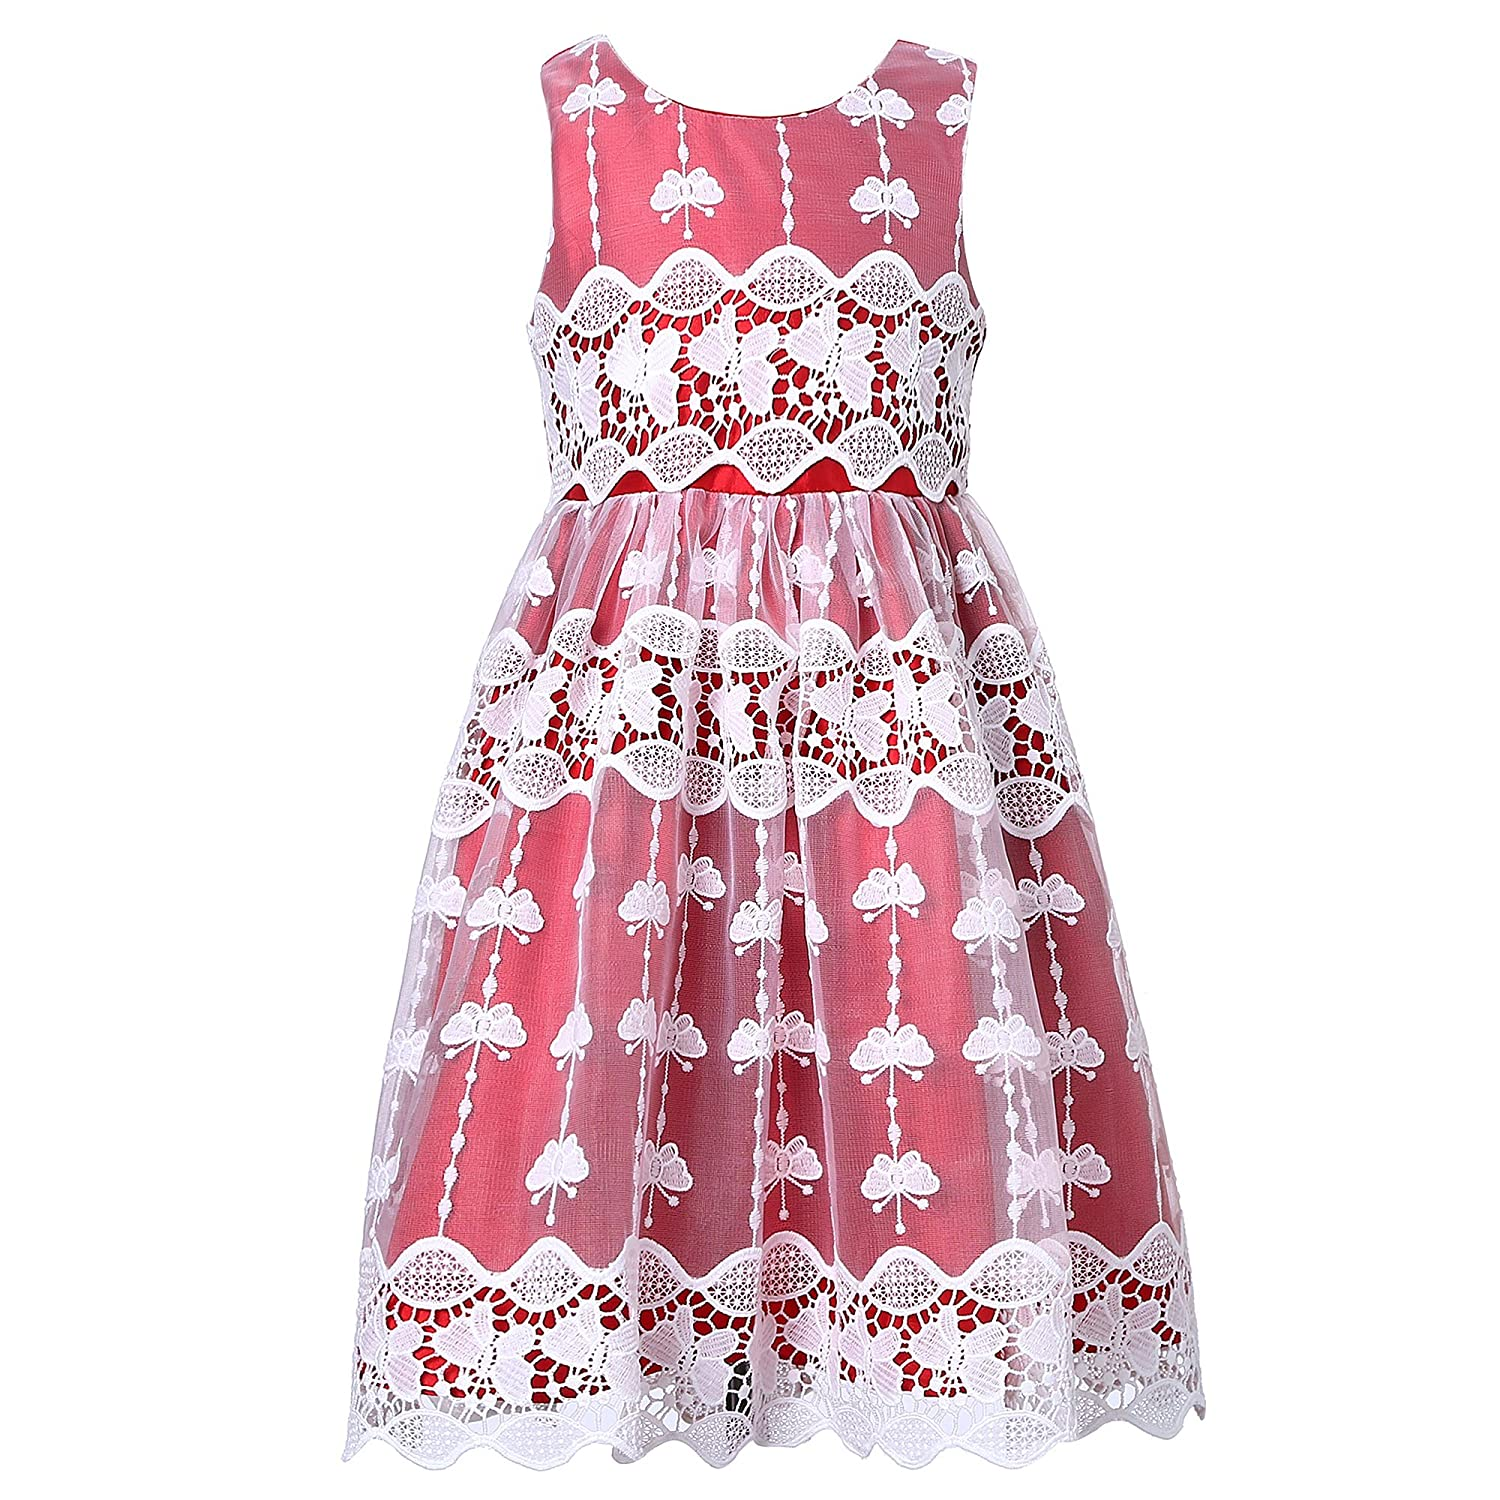 Richie House Girls' Sweet Party Dress Size 2-8Y RH2252